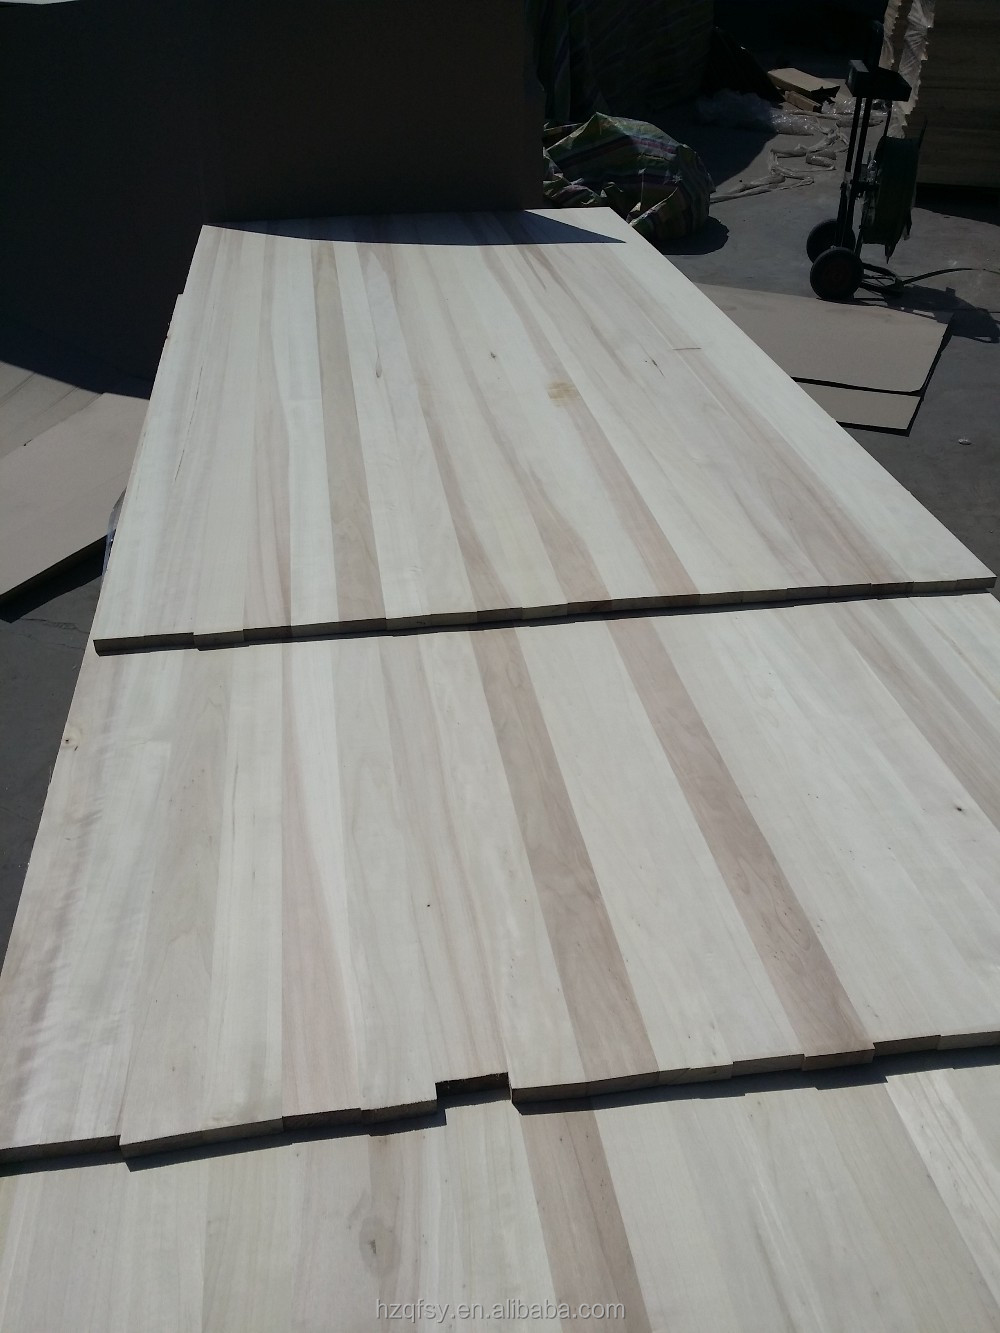 High quality hot selling paulownia s4s lumber